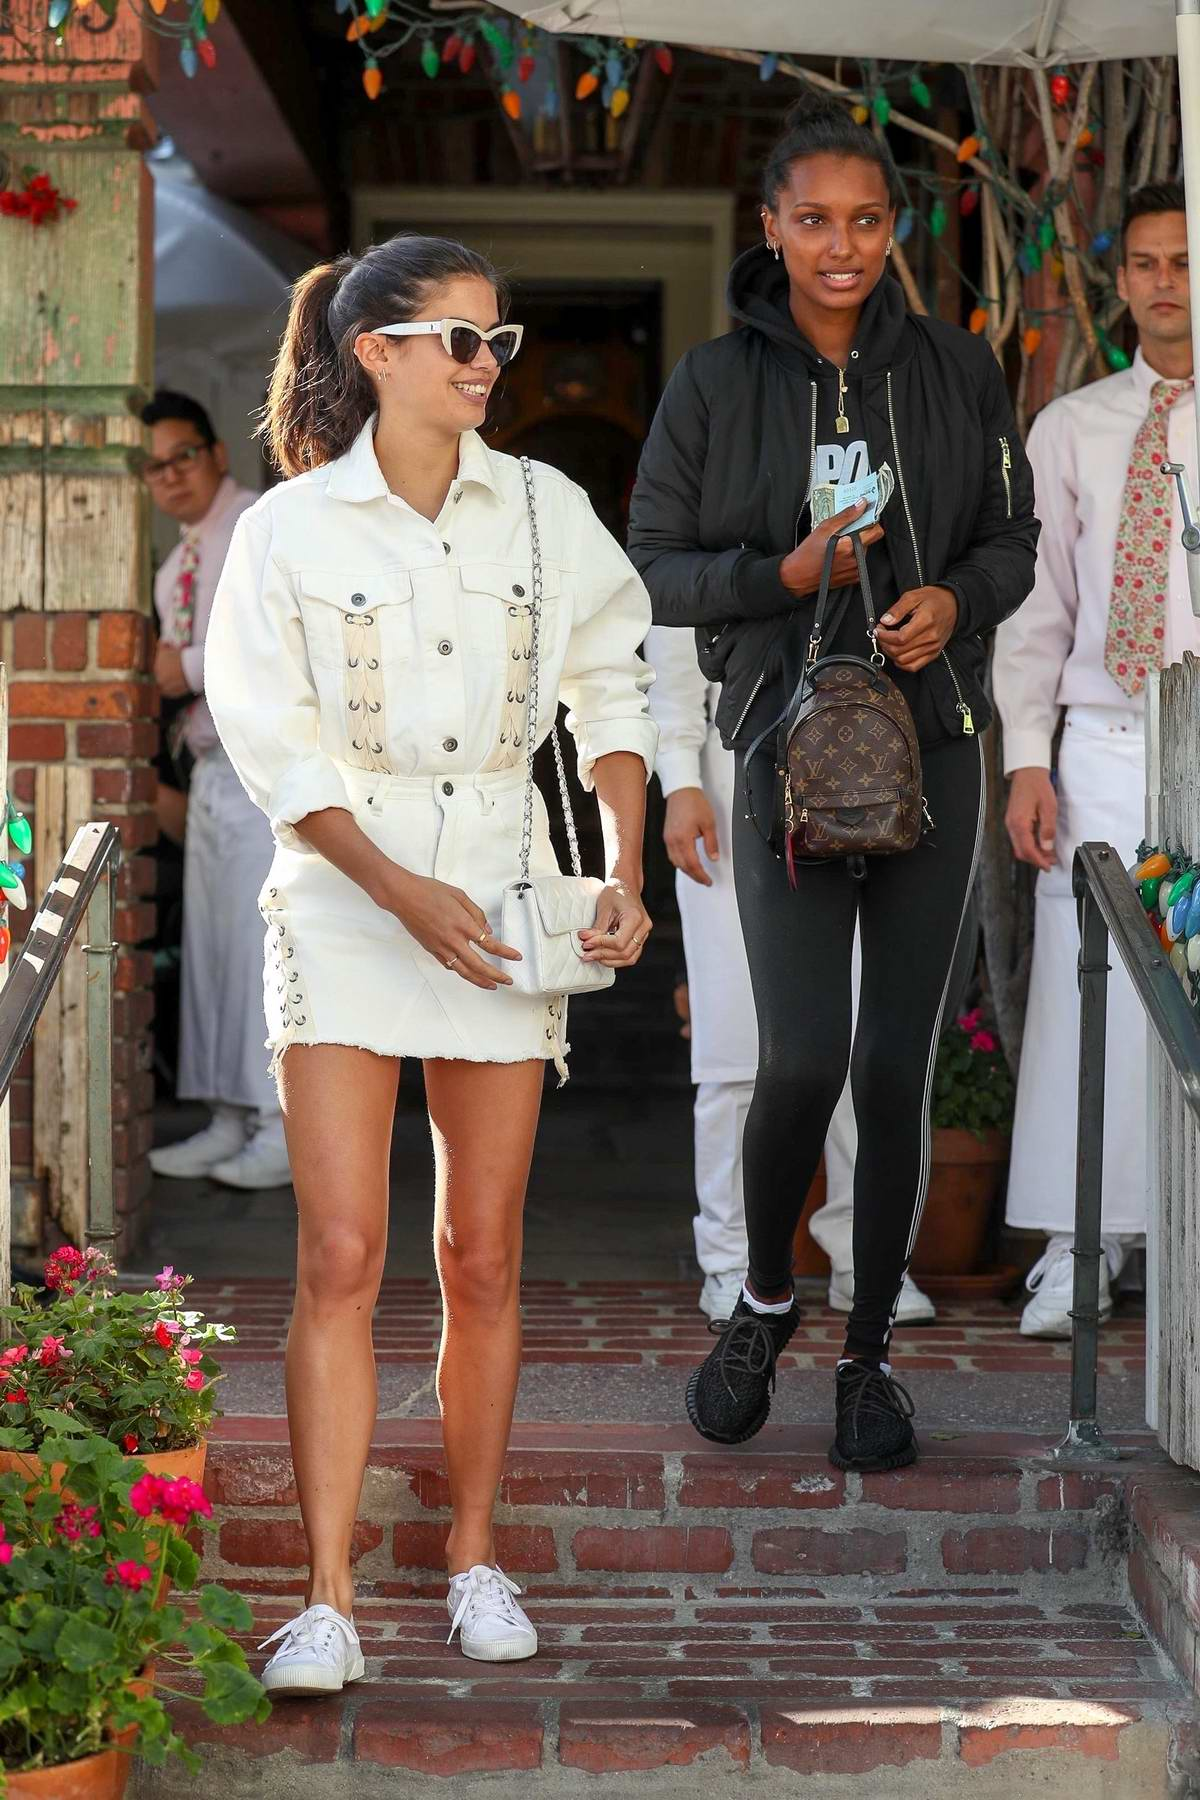 Sara Sampaio and Jasmine Tookes enjoyed a fancy meal today at 'The Ivy' in West Hollywood, Los Angeles